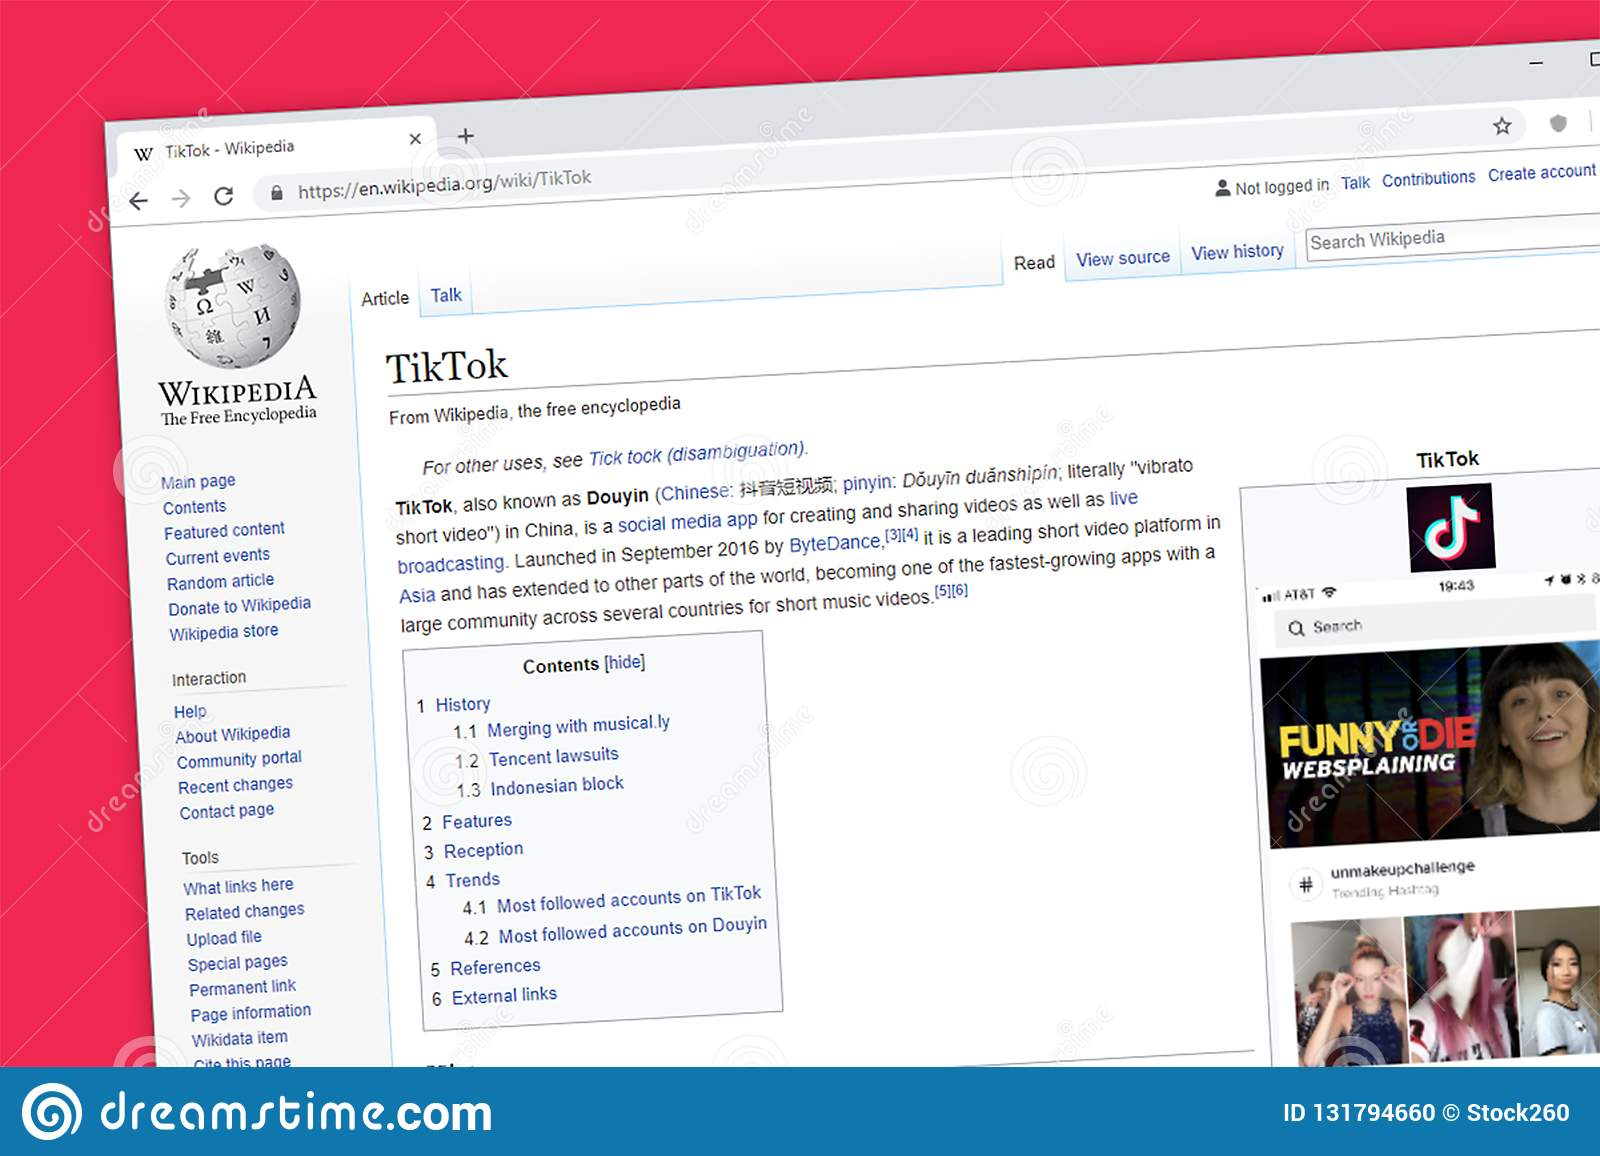 TikTok Including Musical ly App Wikipedia Information Page